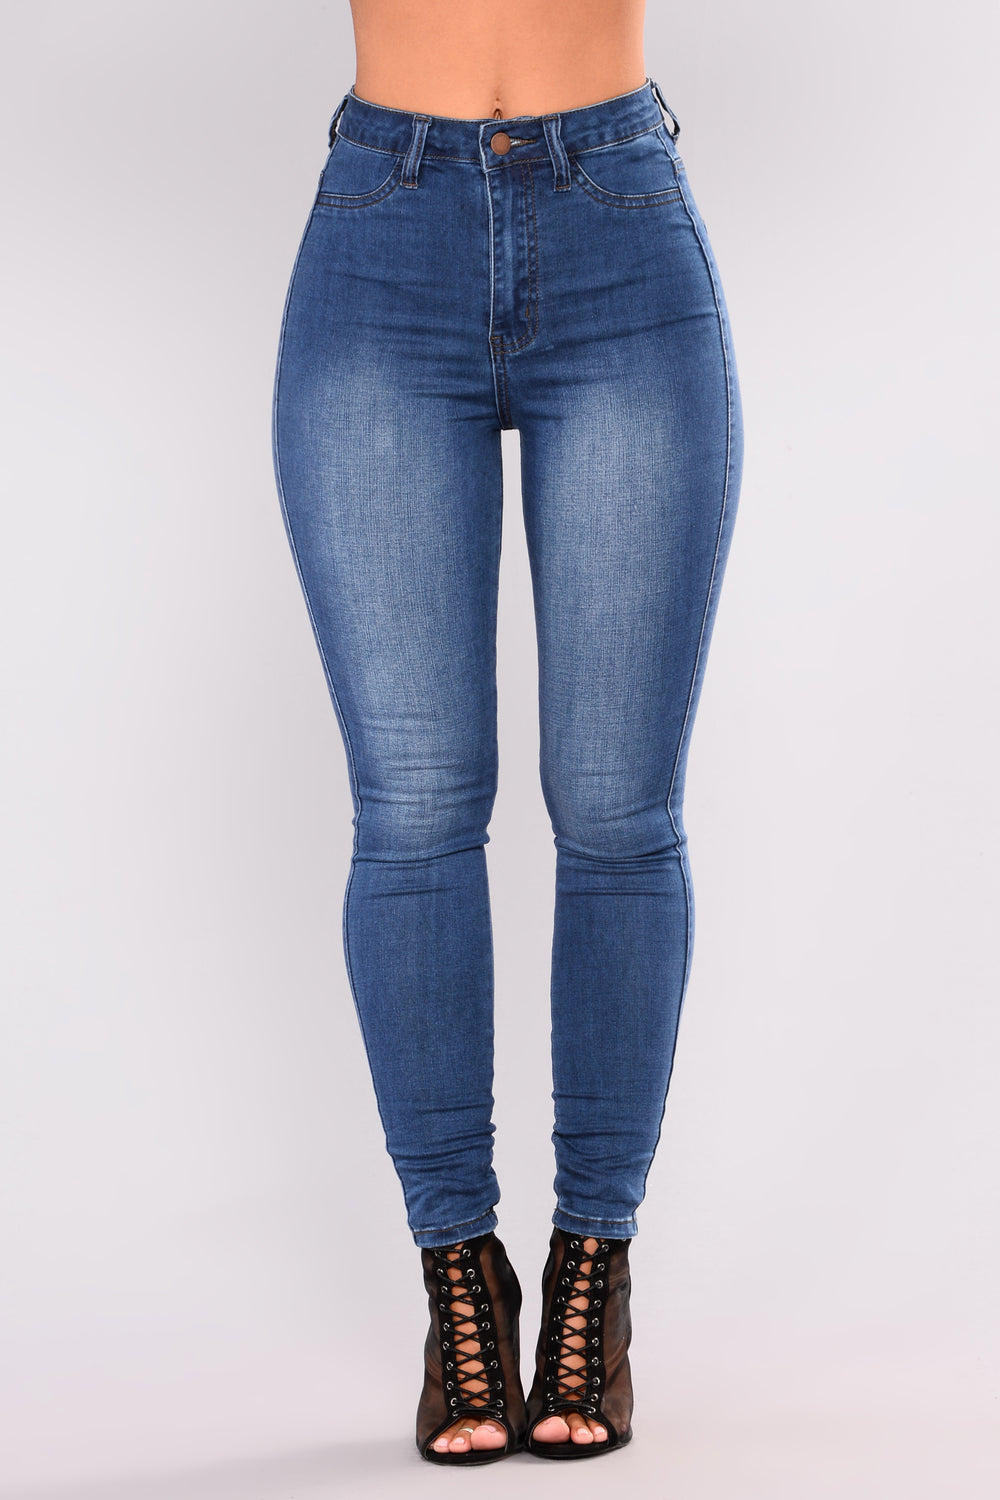 Iced Latte Please Ankle Jeans - Medium Blue Wash